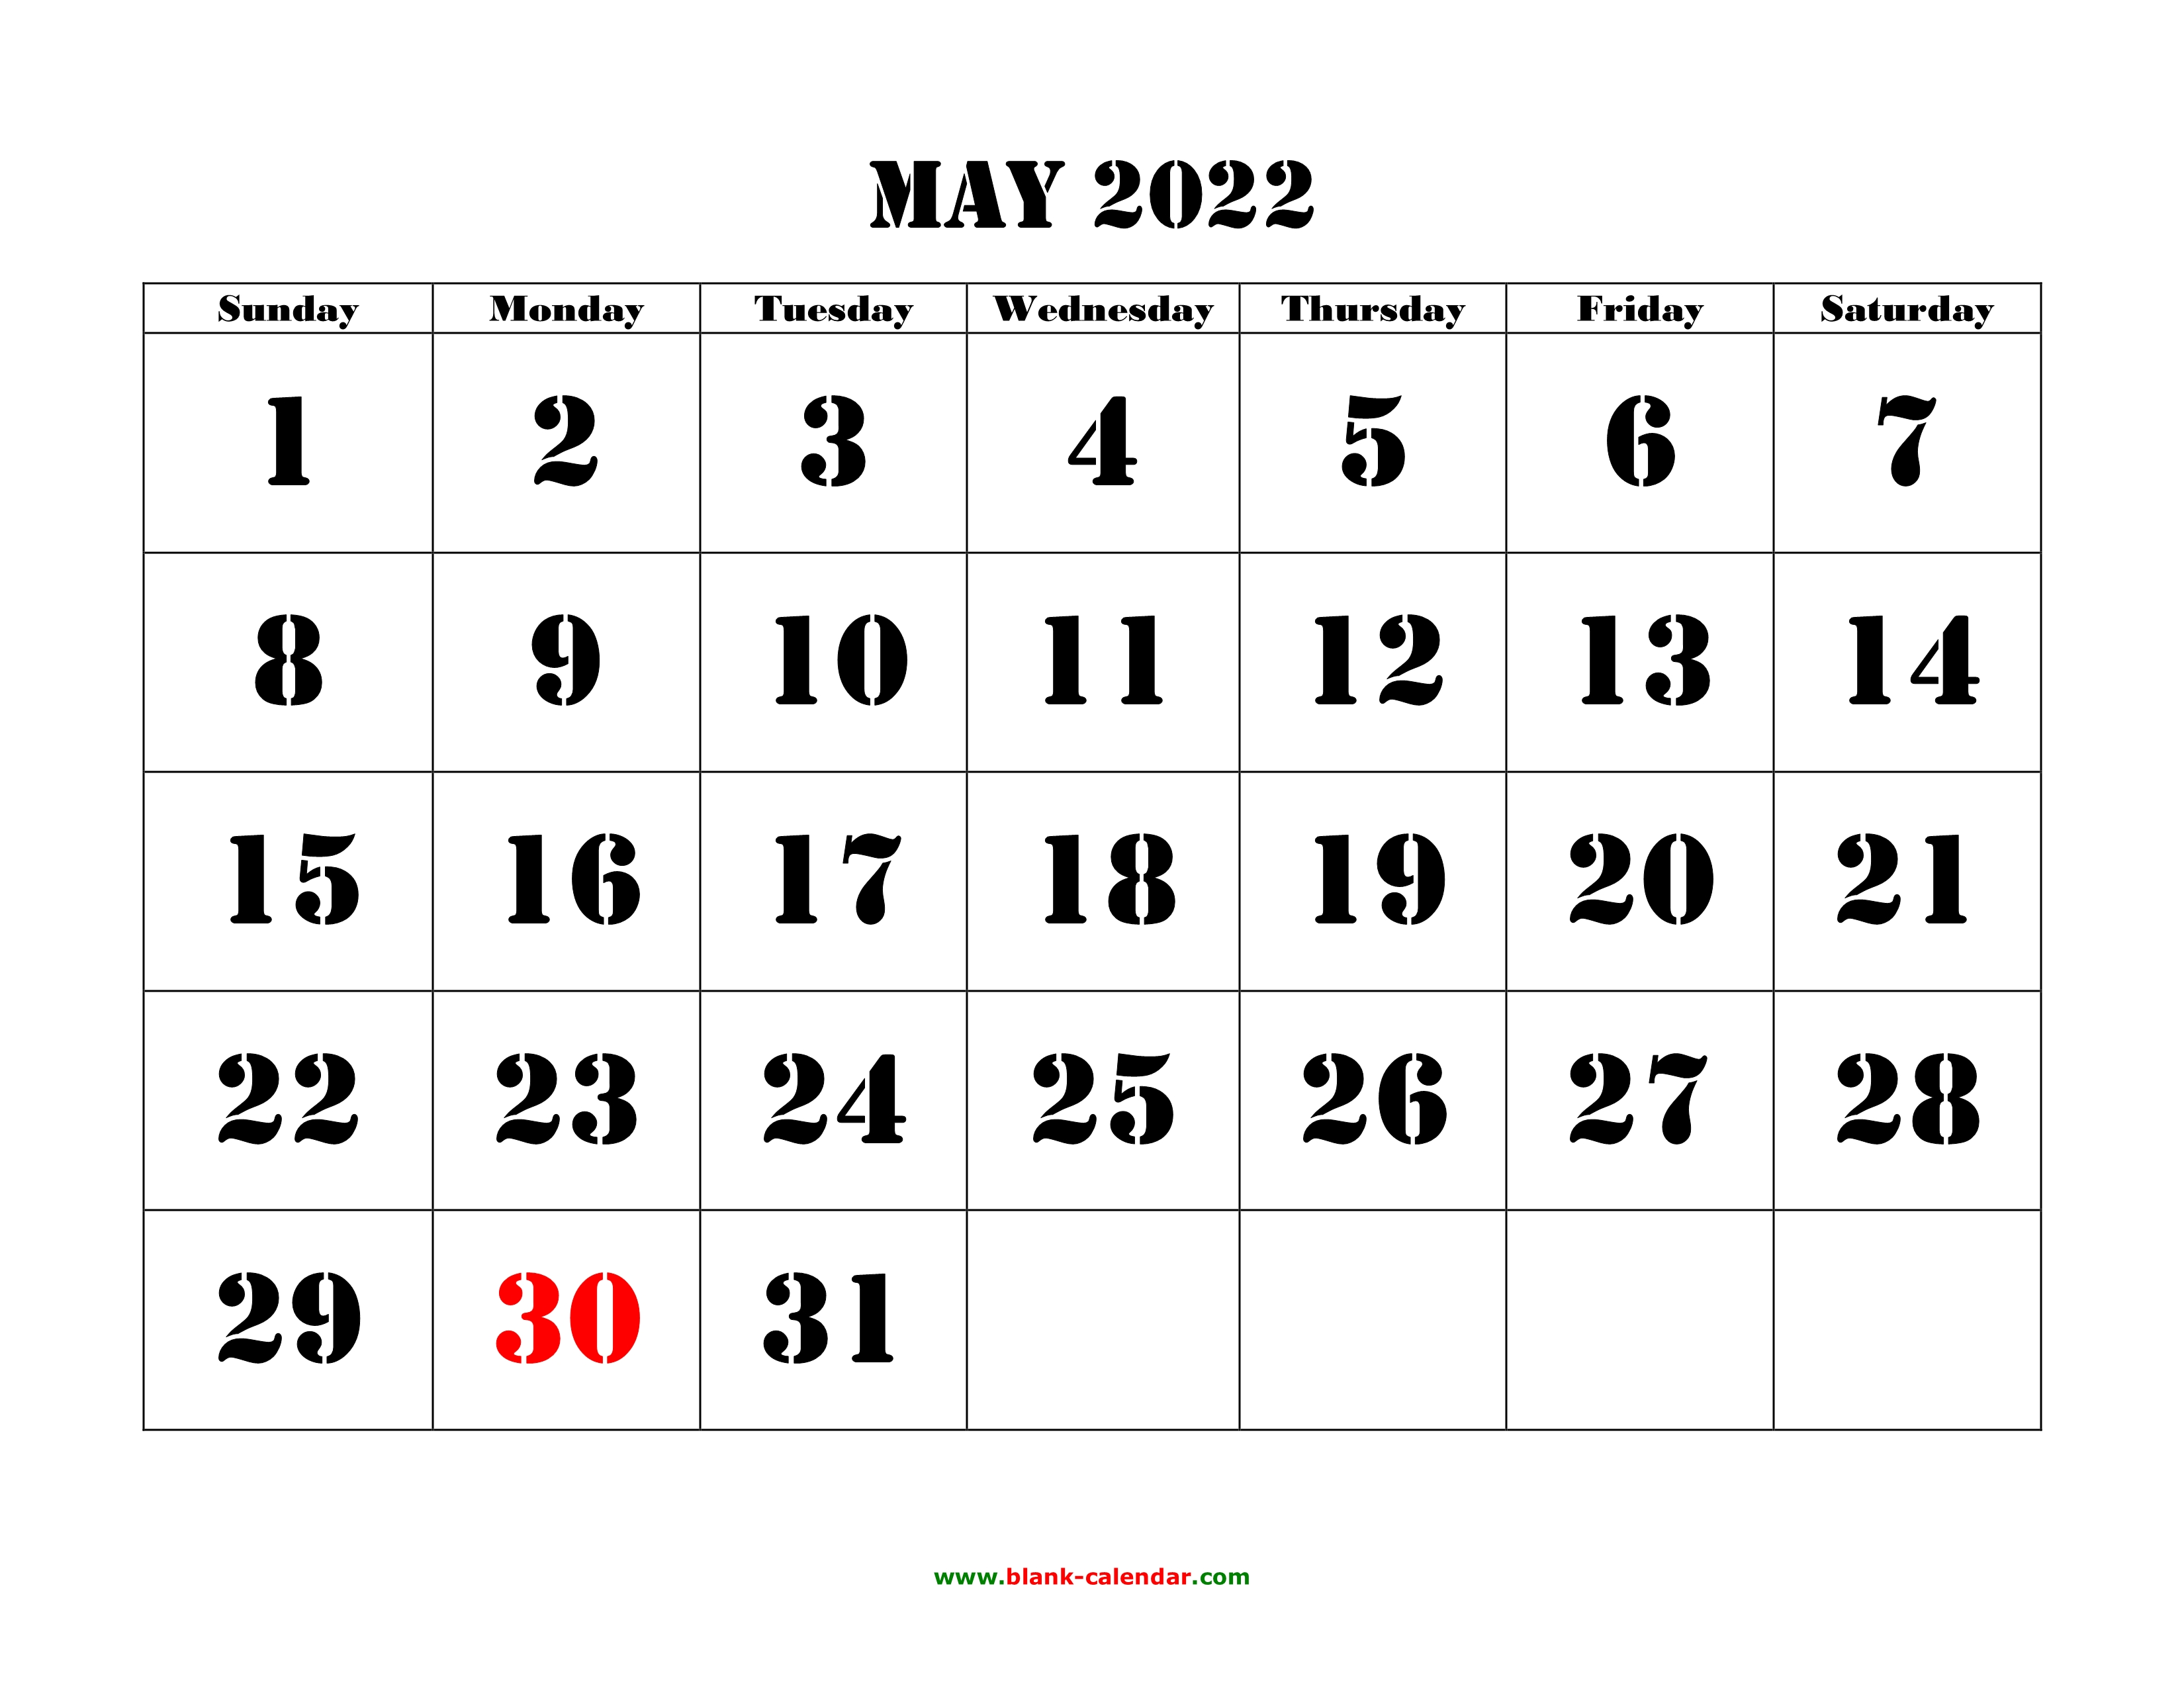 May 2022 Monthly Calendar.May 2022 Printable Calendar Free Download Monthly Calendar Templates